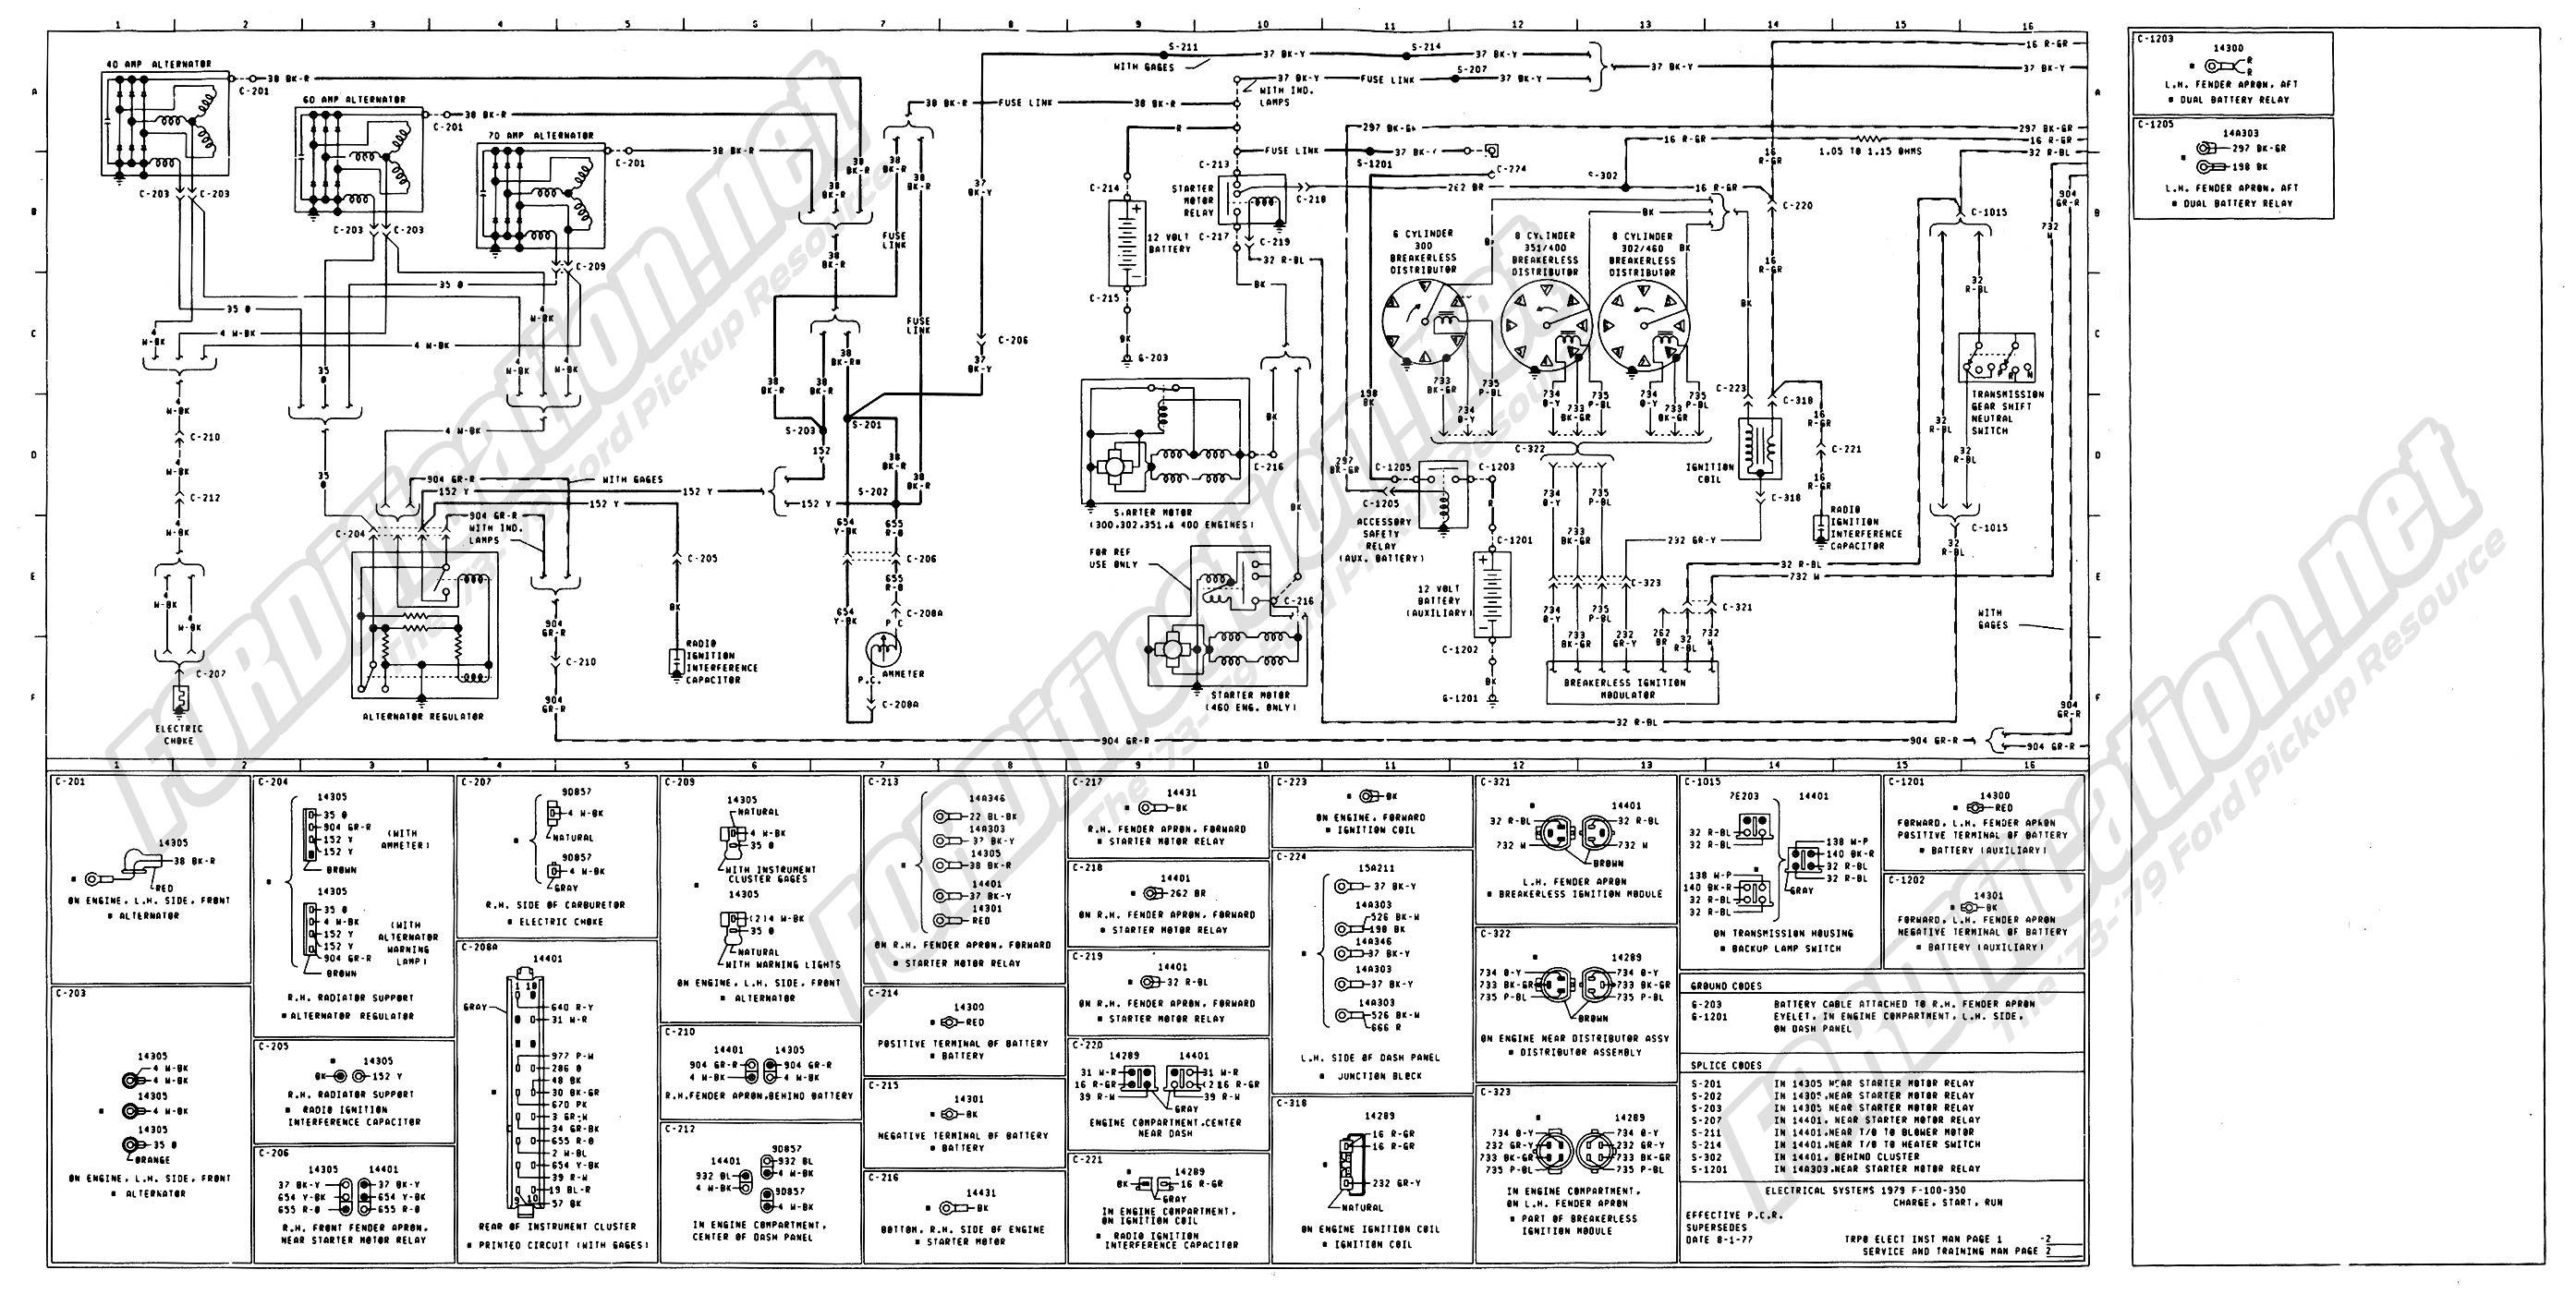 1977 Ford F150 Alternator Wiring Diagram - Hb.mrkmpaau.blombo.info  Ford E Wiring Diagram on 1988 ford bronco wiring diagram, 1988 ford mustang wiring diagram, 1988 ford thunderbird wiring diagram, 1988 ford ranger wiring diagram, 1988 porsche 911 wiring diagram, 1988 ford f250 wiring diagram, 1988 buick lesabre wiring diagram, 1988 ford e150 wiring diagram, 1988 ford f150 wiring diagram, 1988 ford f350 wiring diagram, 1988 chevrolet suburban wiring diagram, 1988 jeep wrangler wiring diagram, 1988 ford f700 wiring diagram, 1988 toyota camry wiring diagram, 1988 lincoln town car wiring diagram, 1988 toyota corolla wiring diagram, 1988 mercury grand marquis wiring diagram, 1988 dodge dakota wiring diagram, 1988 jeep cherokee wiring diagram, 1988 honda civic wiring diagram,